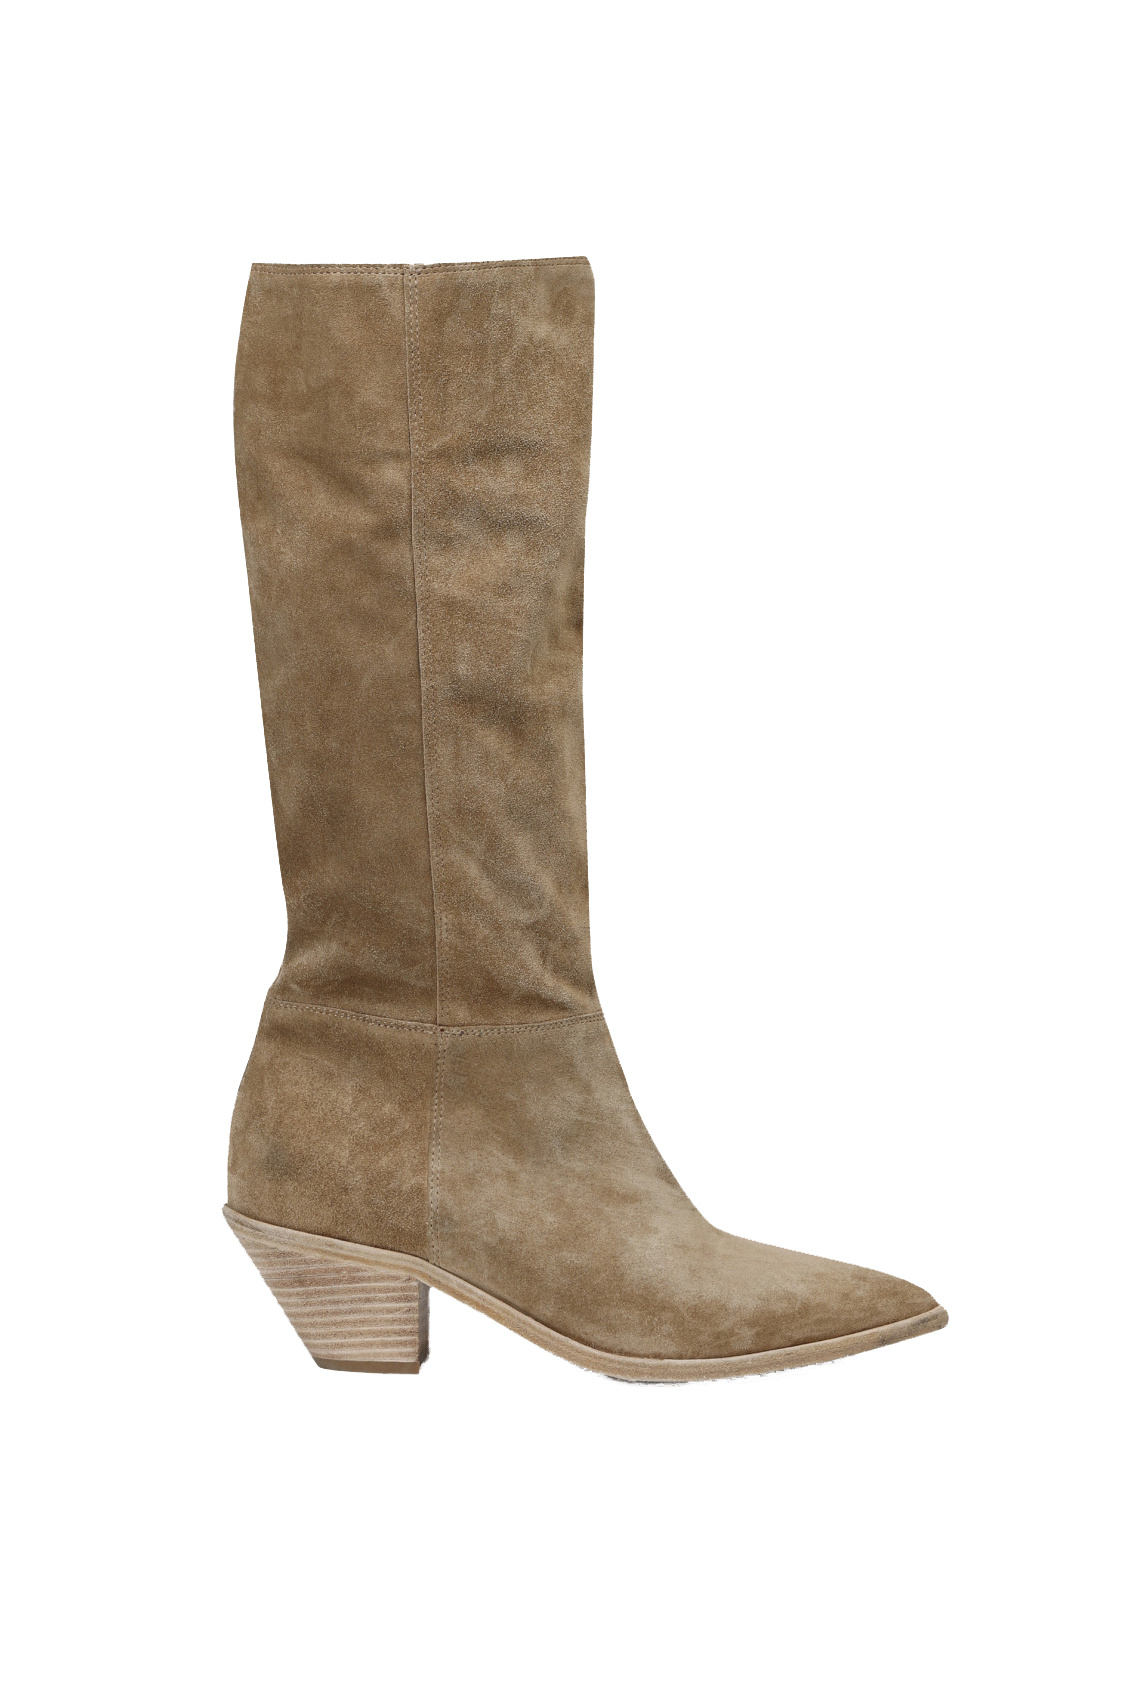 Cowby Boots - Raw Sable 37-1